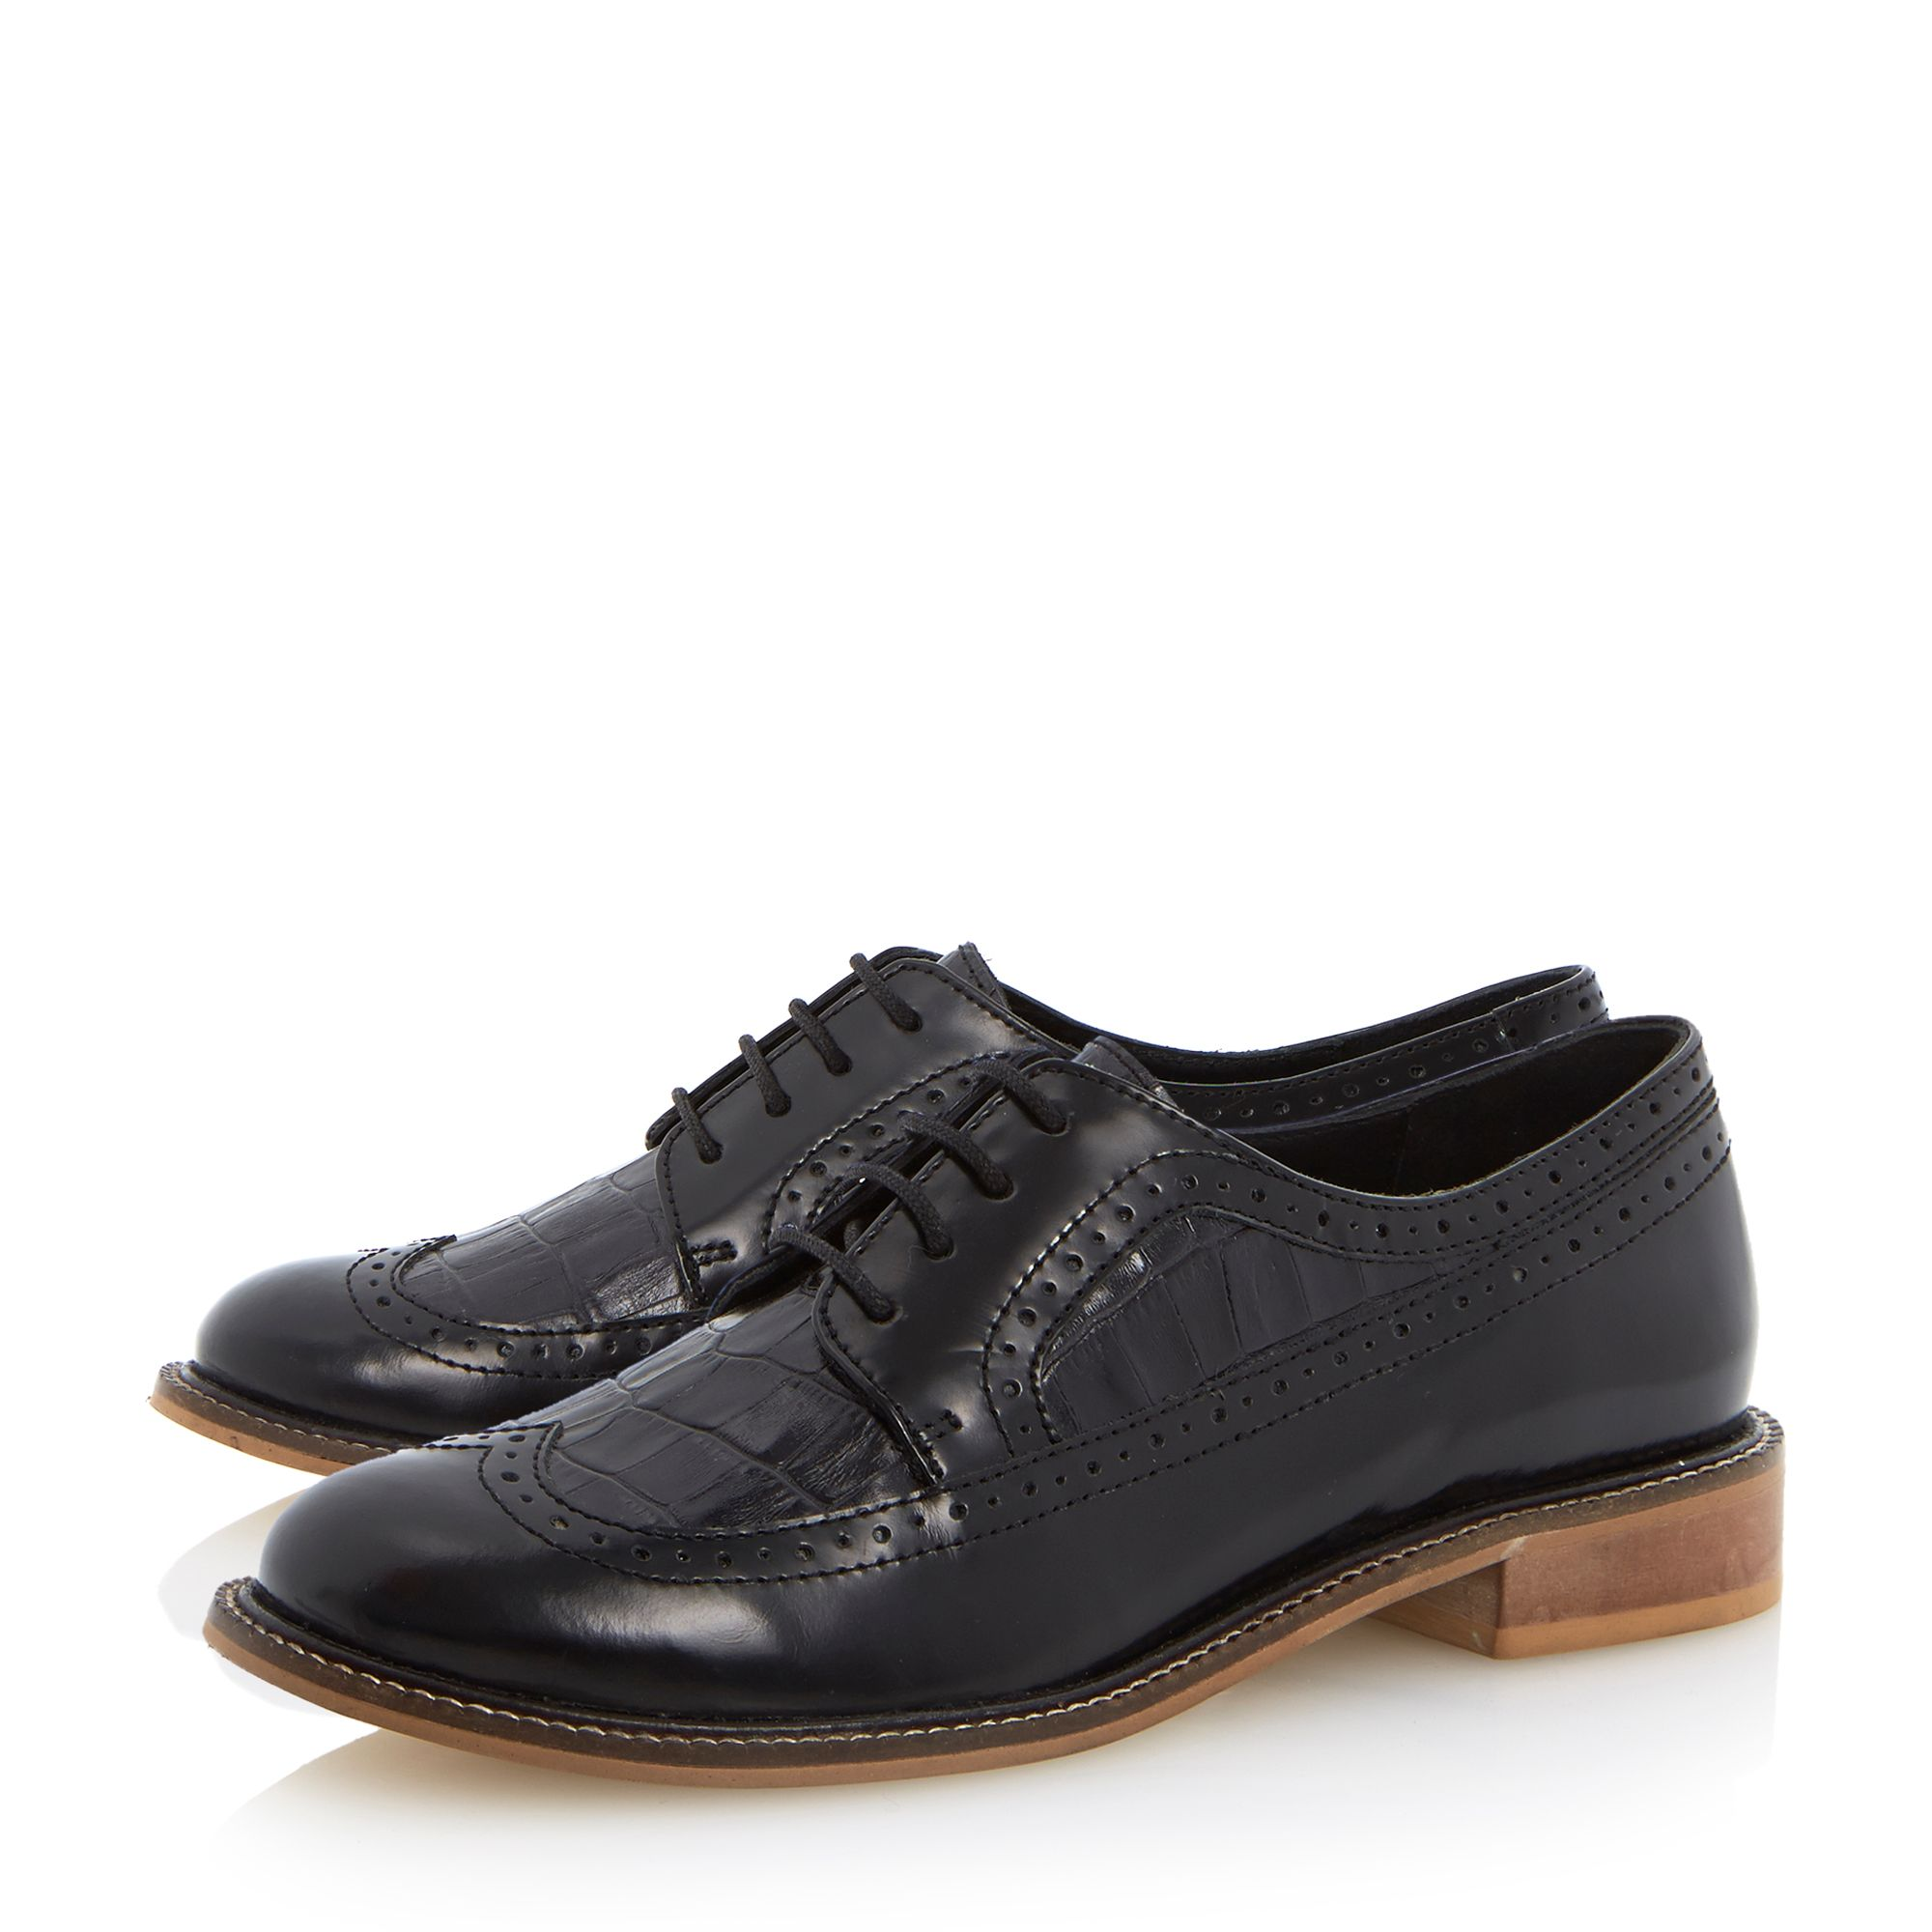 Lacker wingtip detail lace up shoes